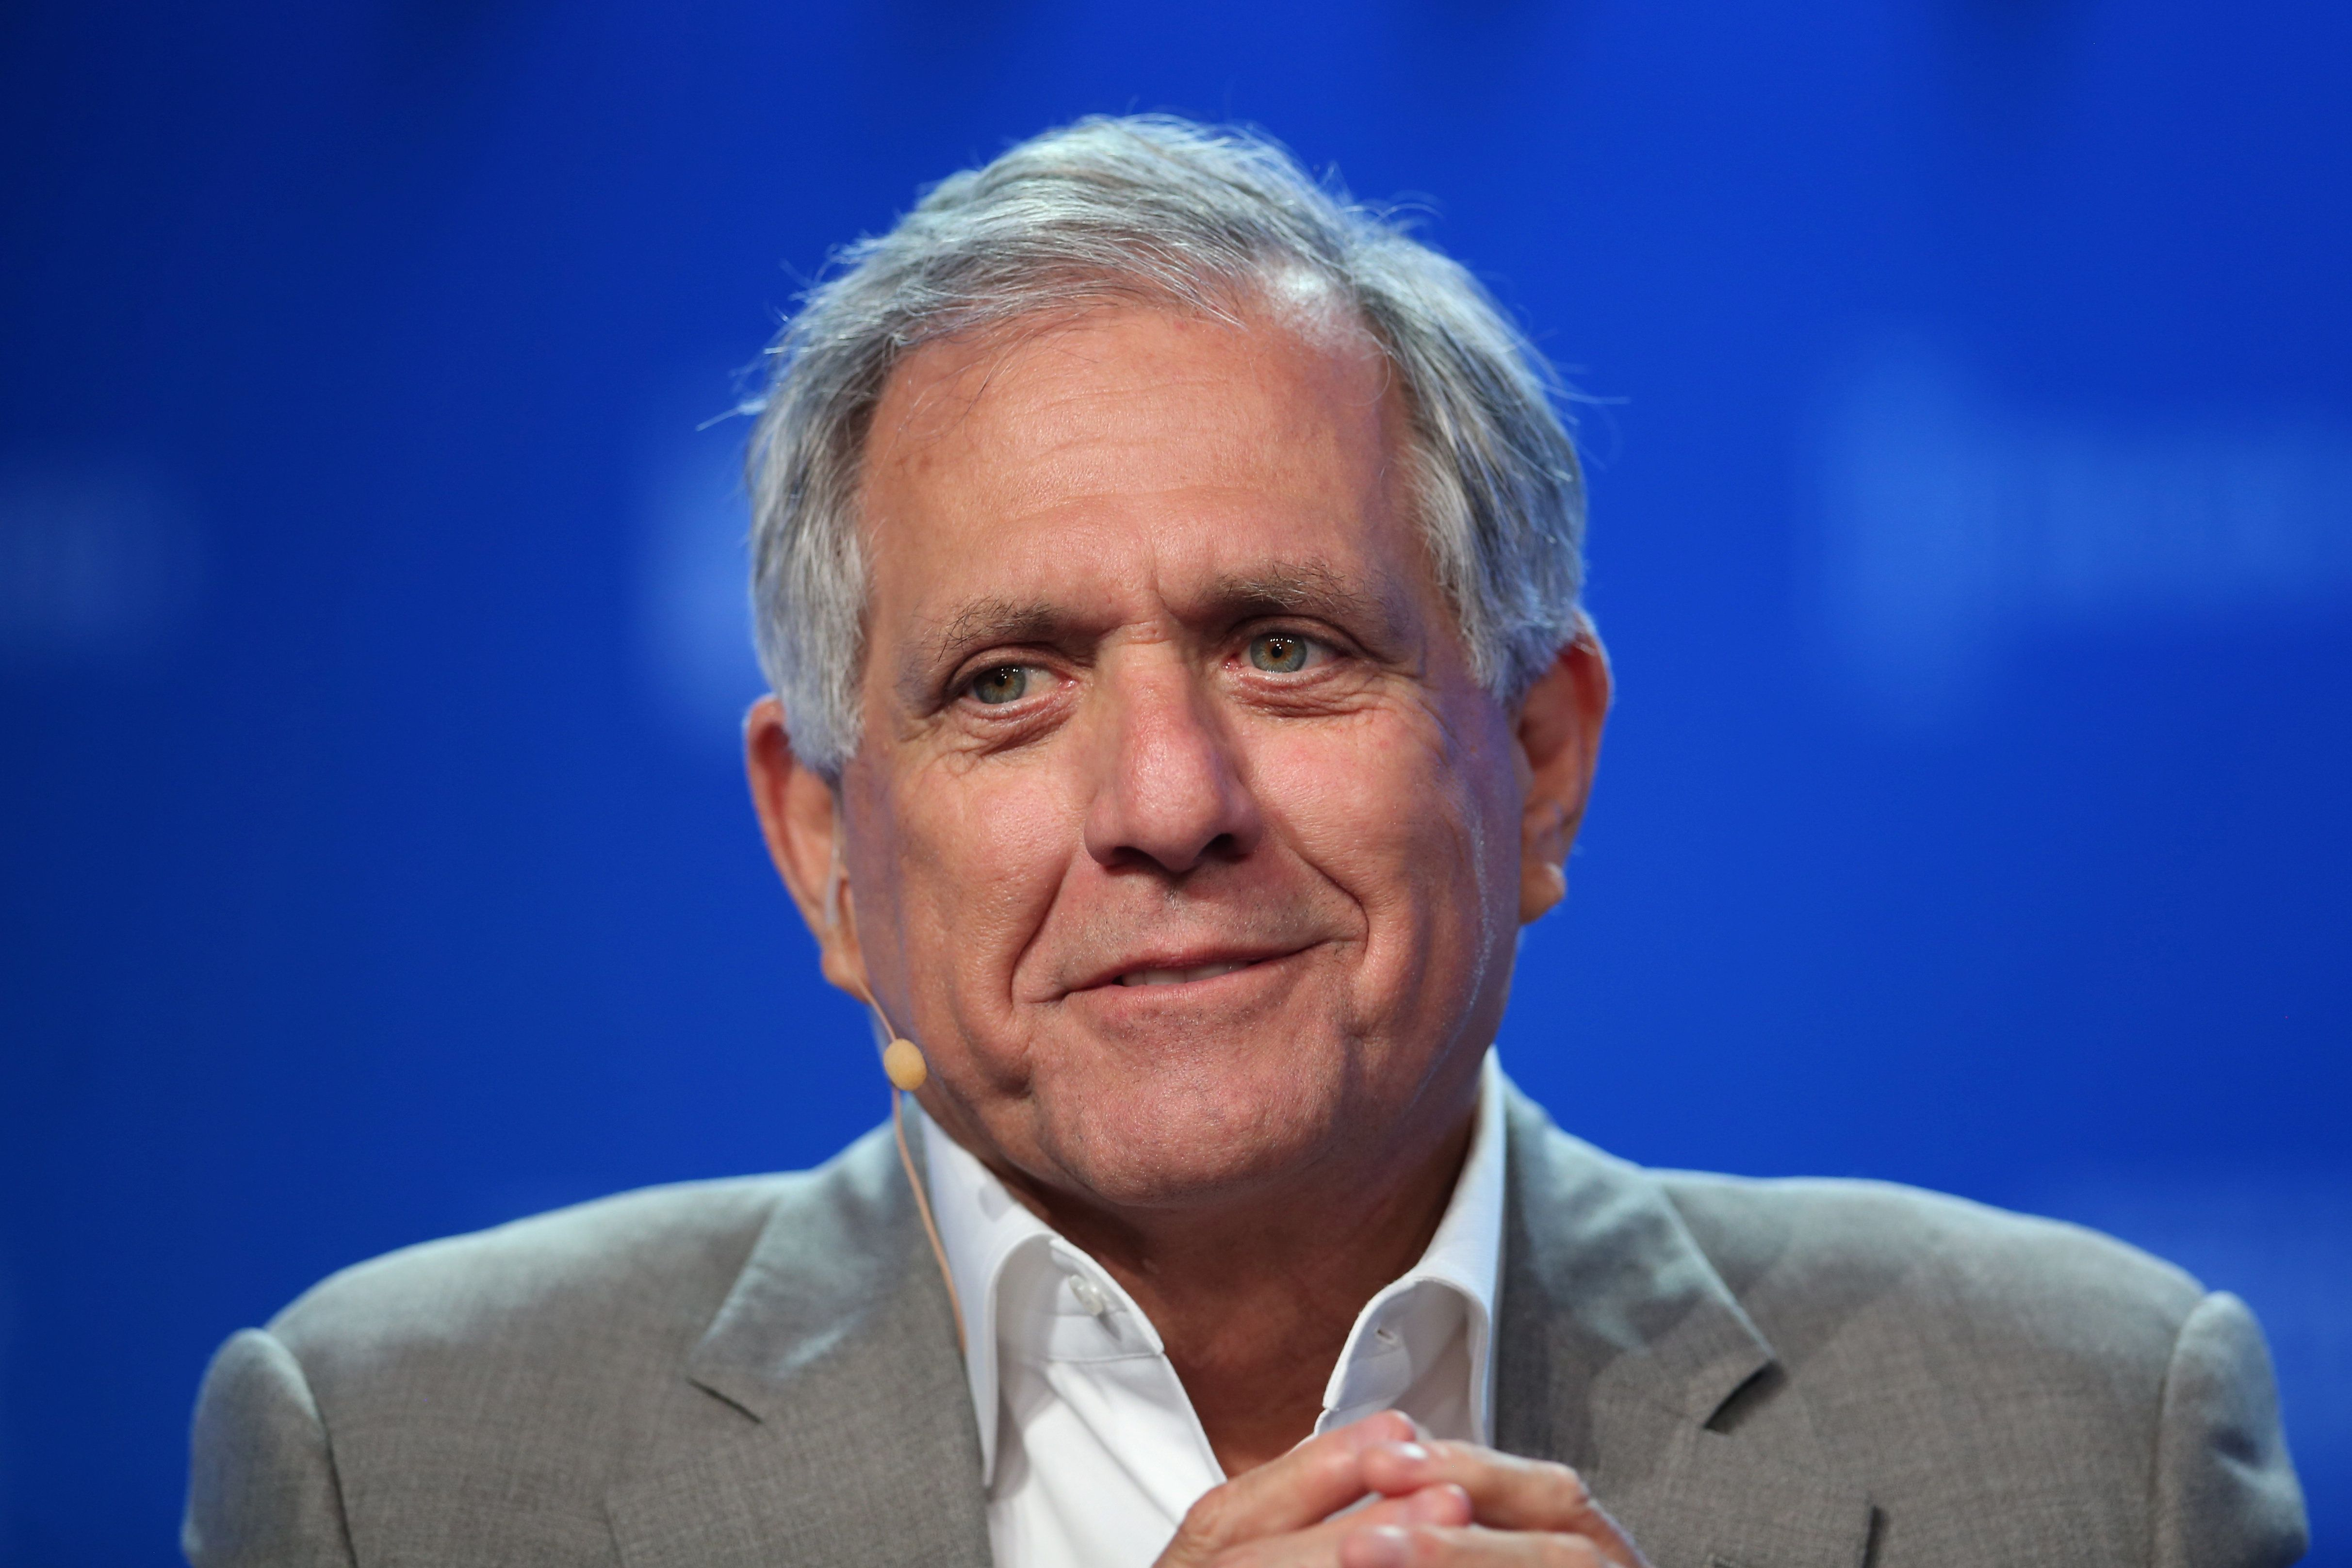 Moonves wanted to ruin Janet Jackson's career after nip-slip